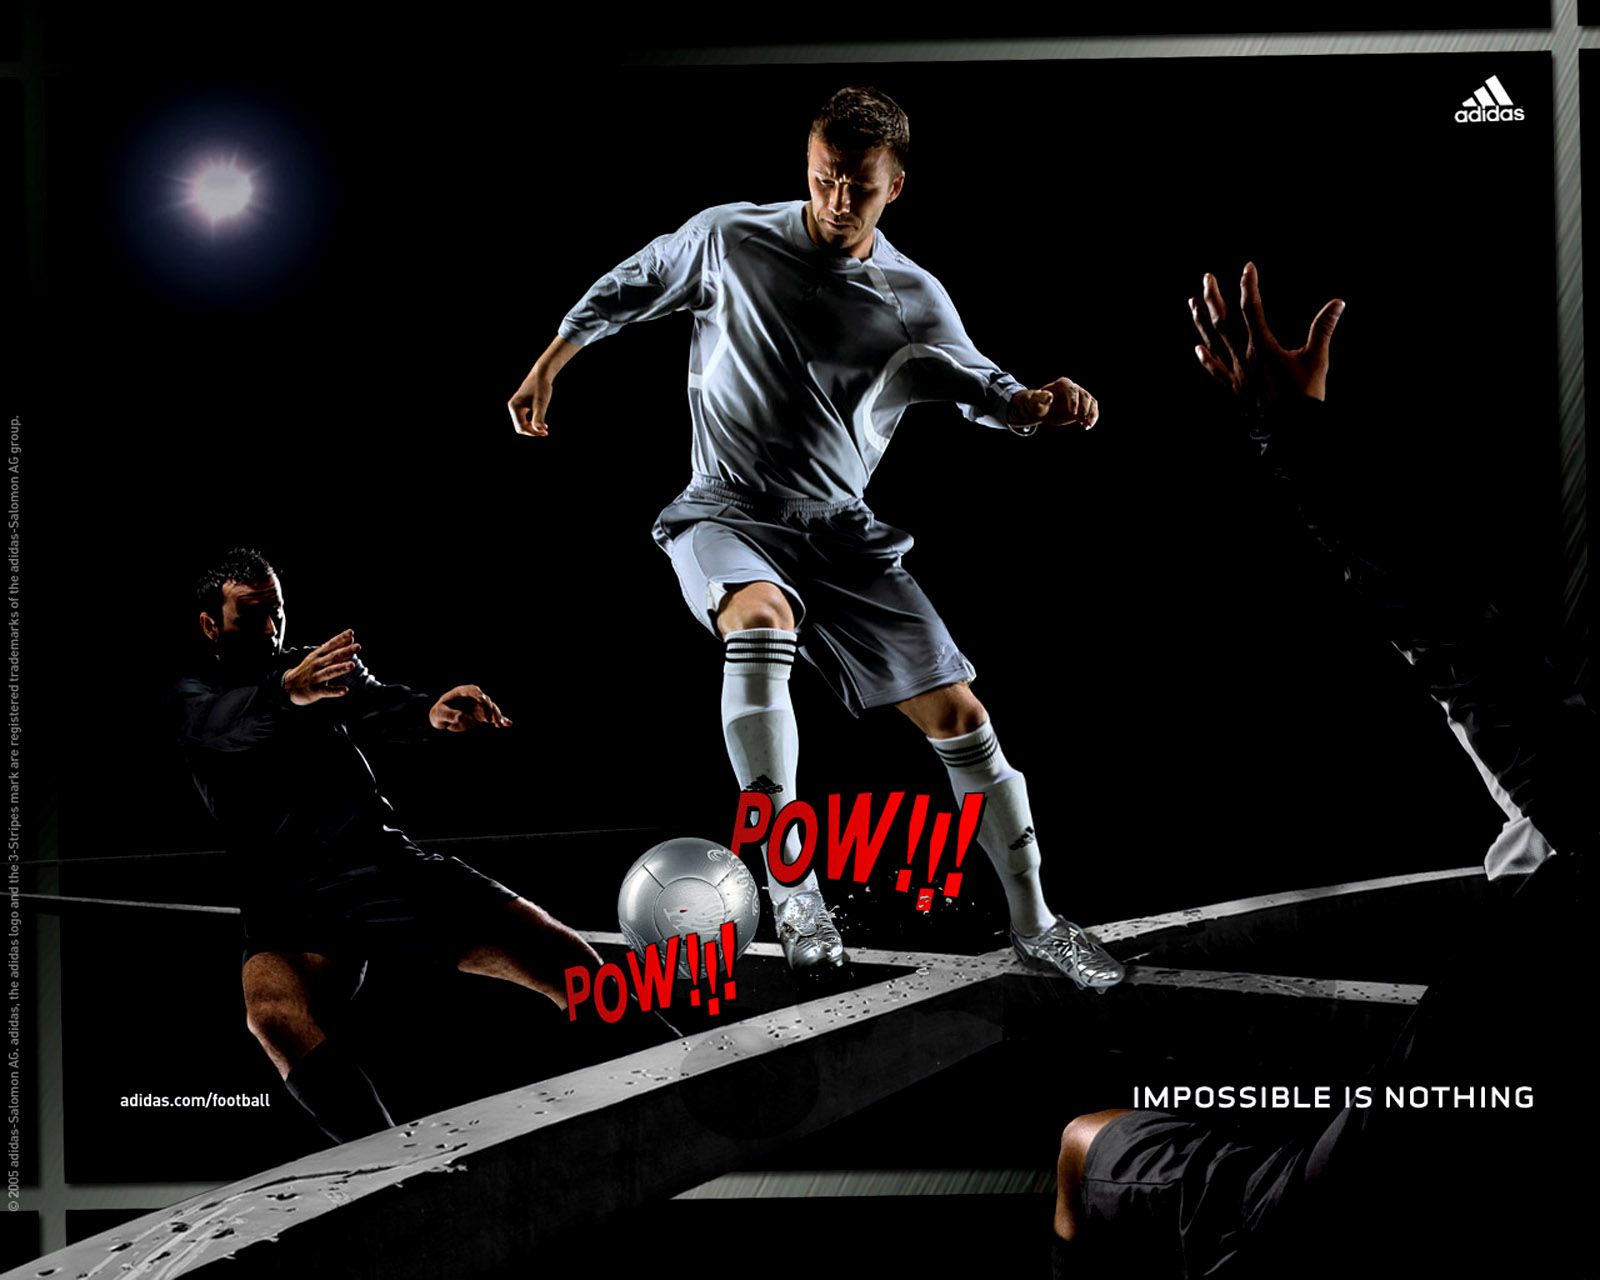 Adidas Impossible is Nothing Ads HD Wallpapers| HD ...